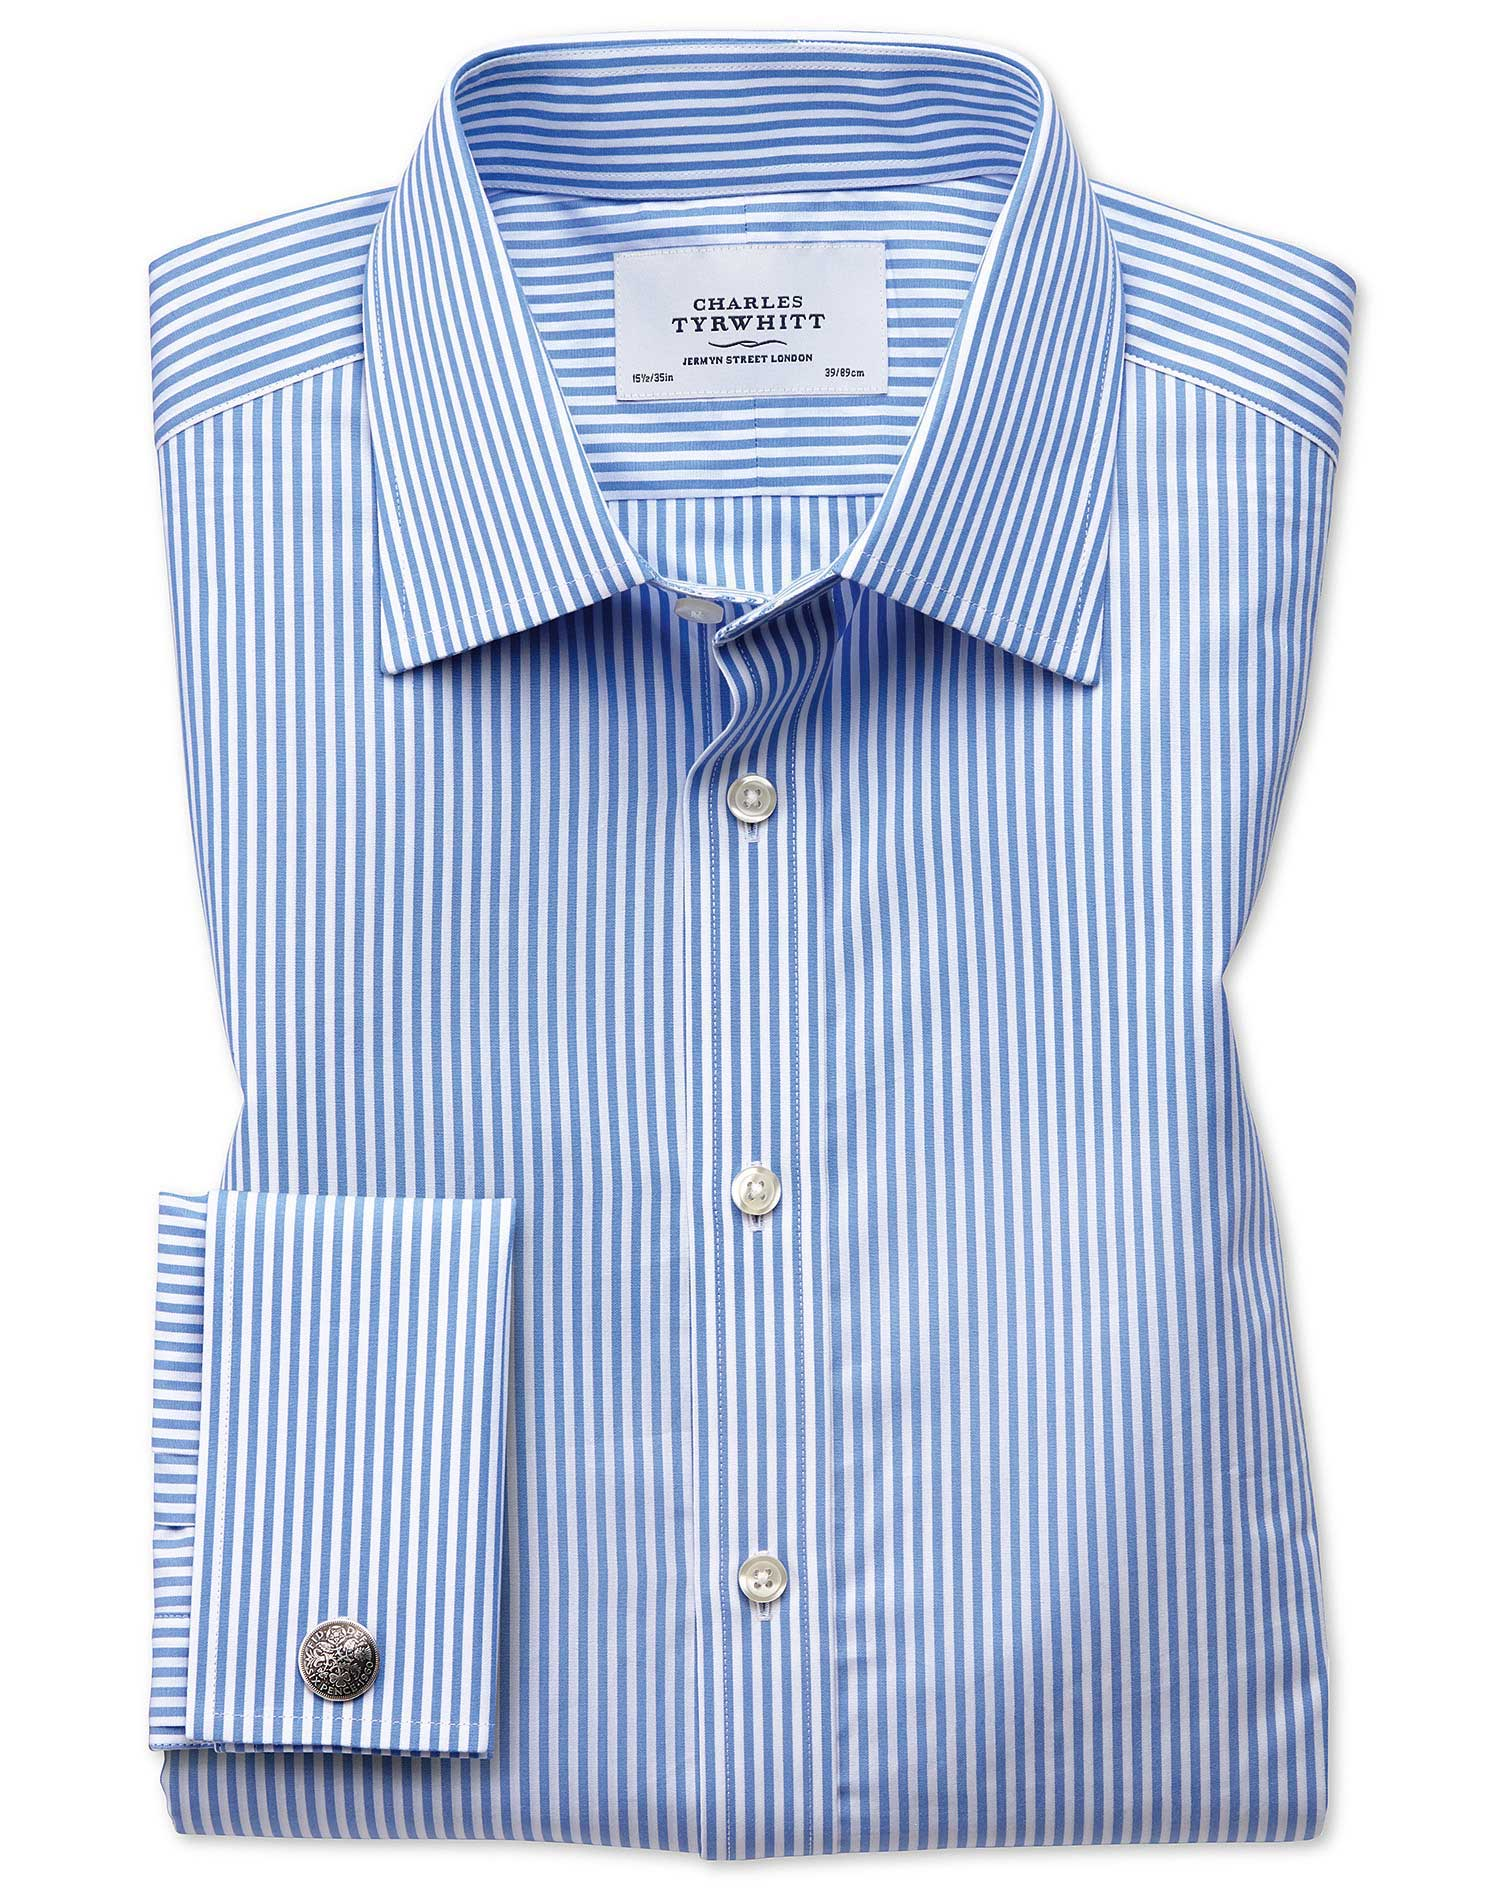 Classic Fit Bengal Stripe Sky Blue Cotton Formal Shirt Single Cuff Size 17.5/34 by Charles Tyrwhitt